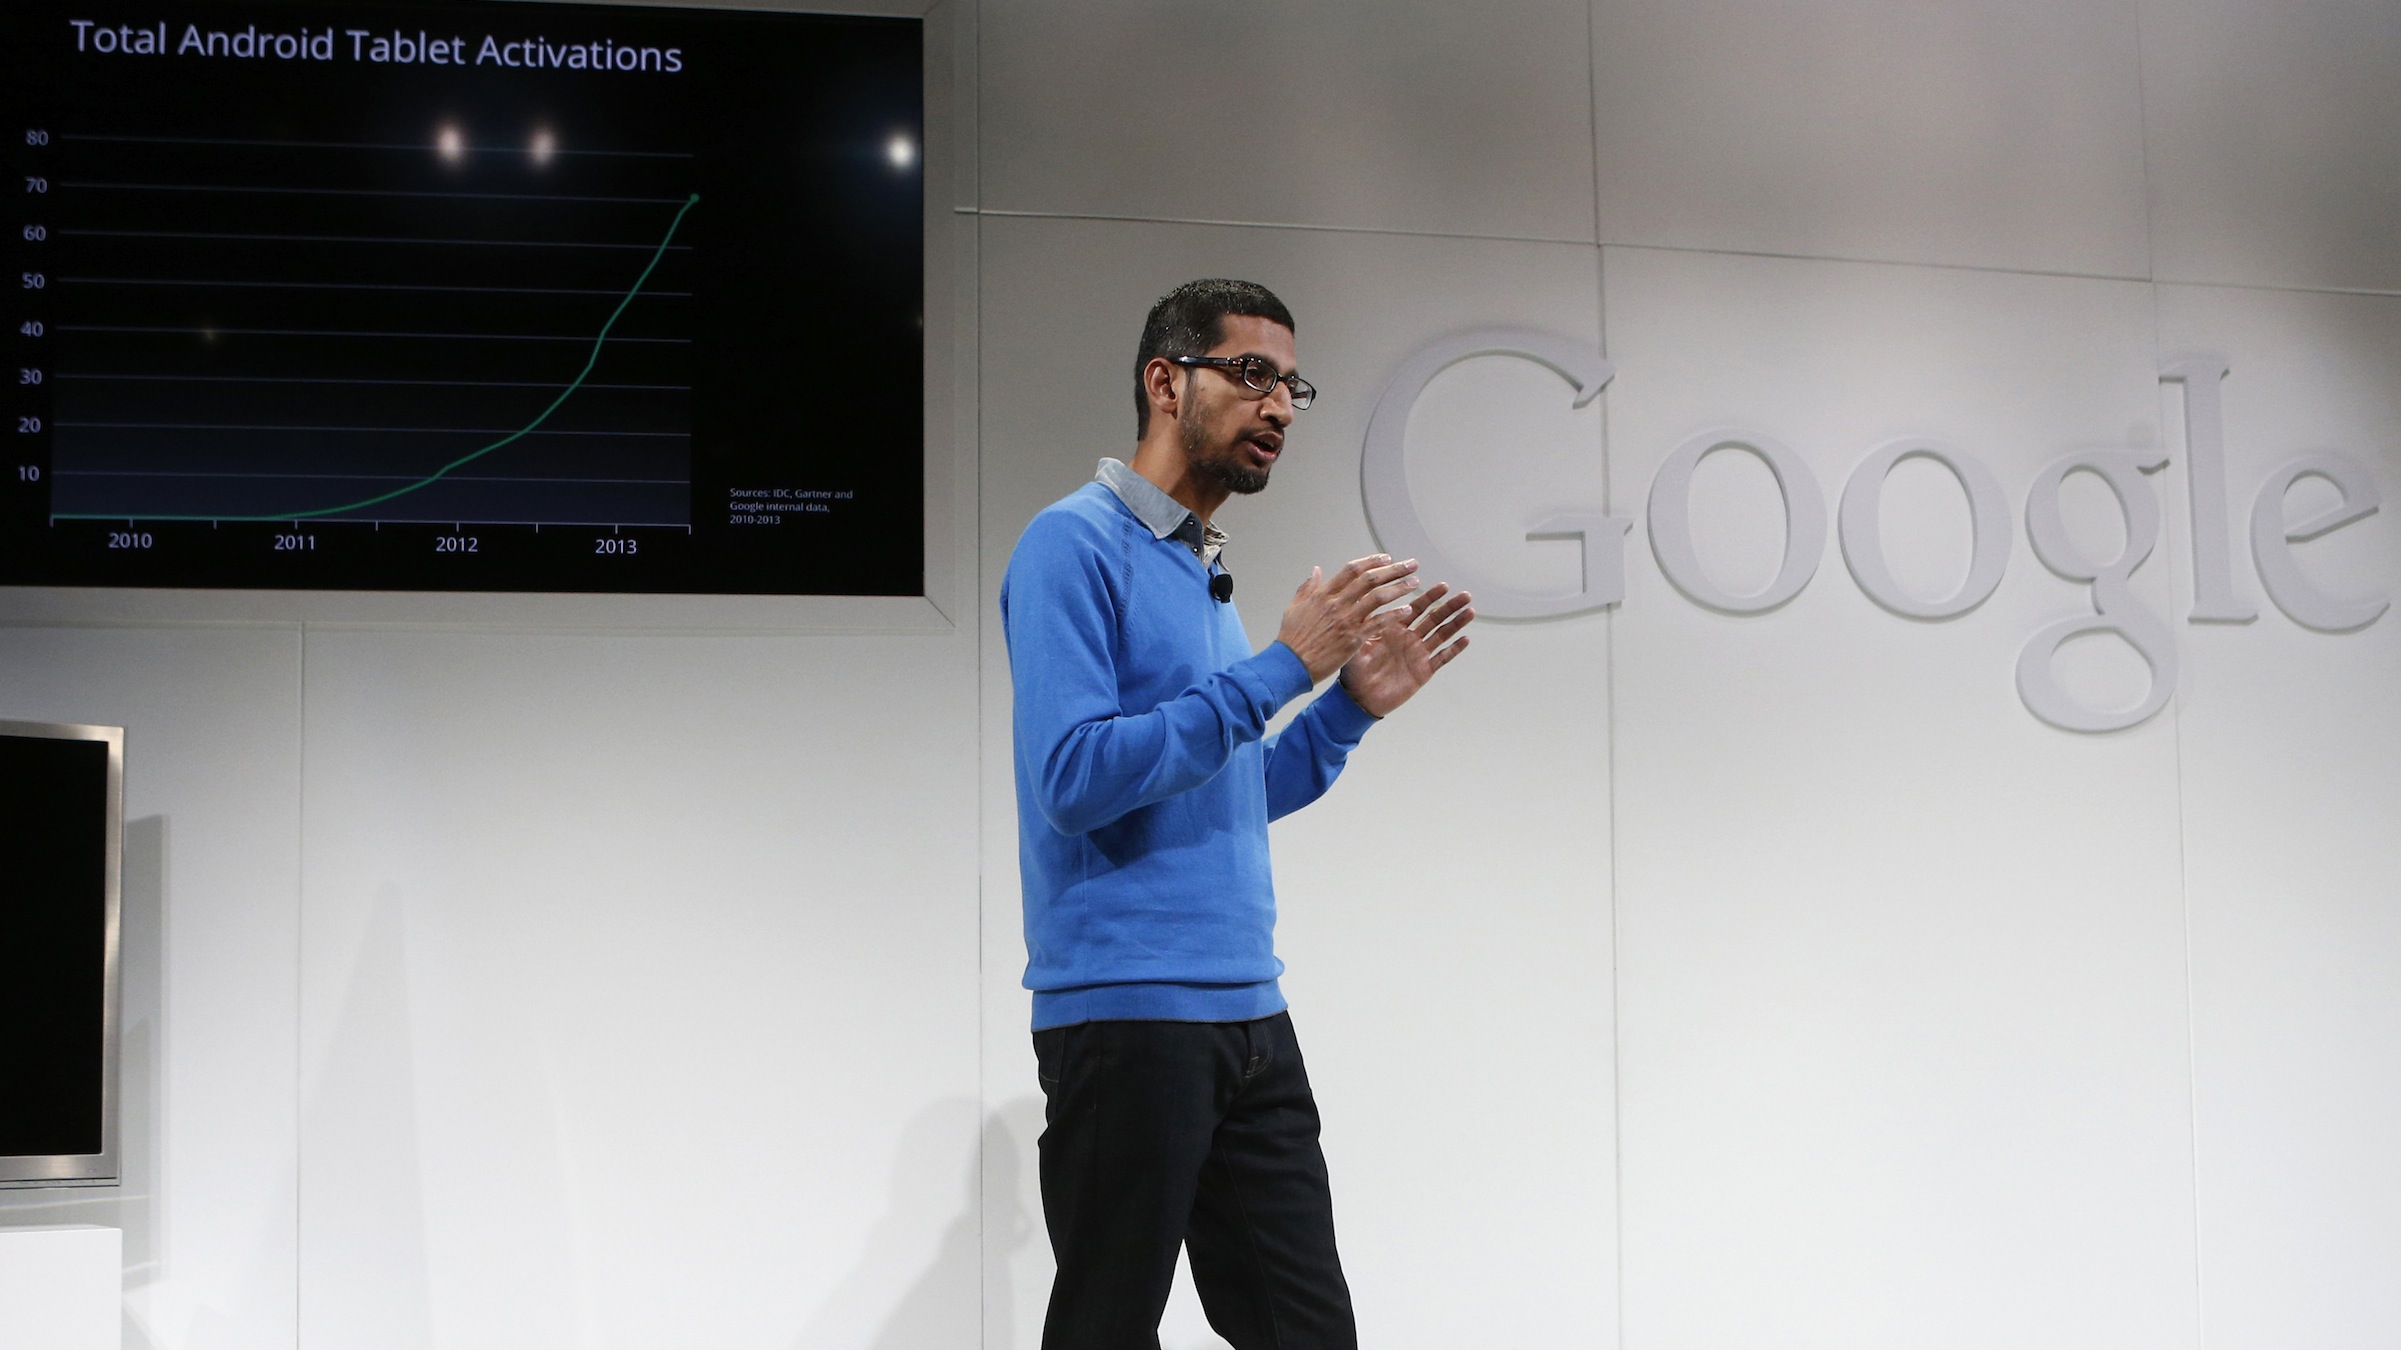 Sundar Pichai, senior vice president at Google, speaks during a Google event at Dogpatch Studio in San Francisco, California, July 24, 2013. REUTERS/Beck Diefenbach (UNITED STATES - Tags: BUSINESS SCIENCE TECHNOLOGY) - RTX11XAS